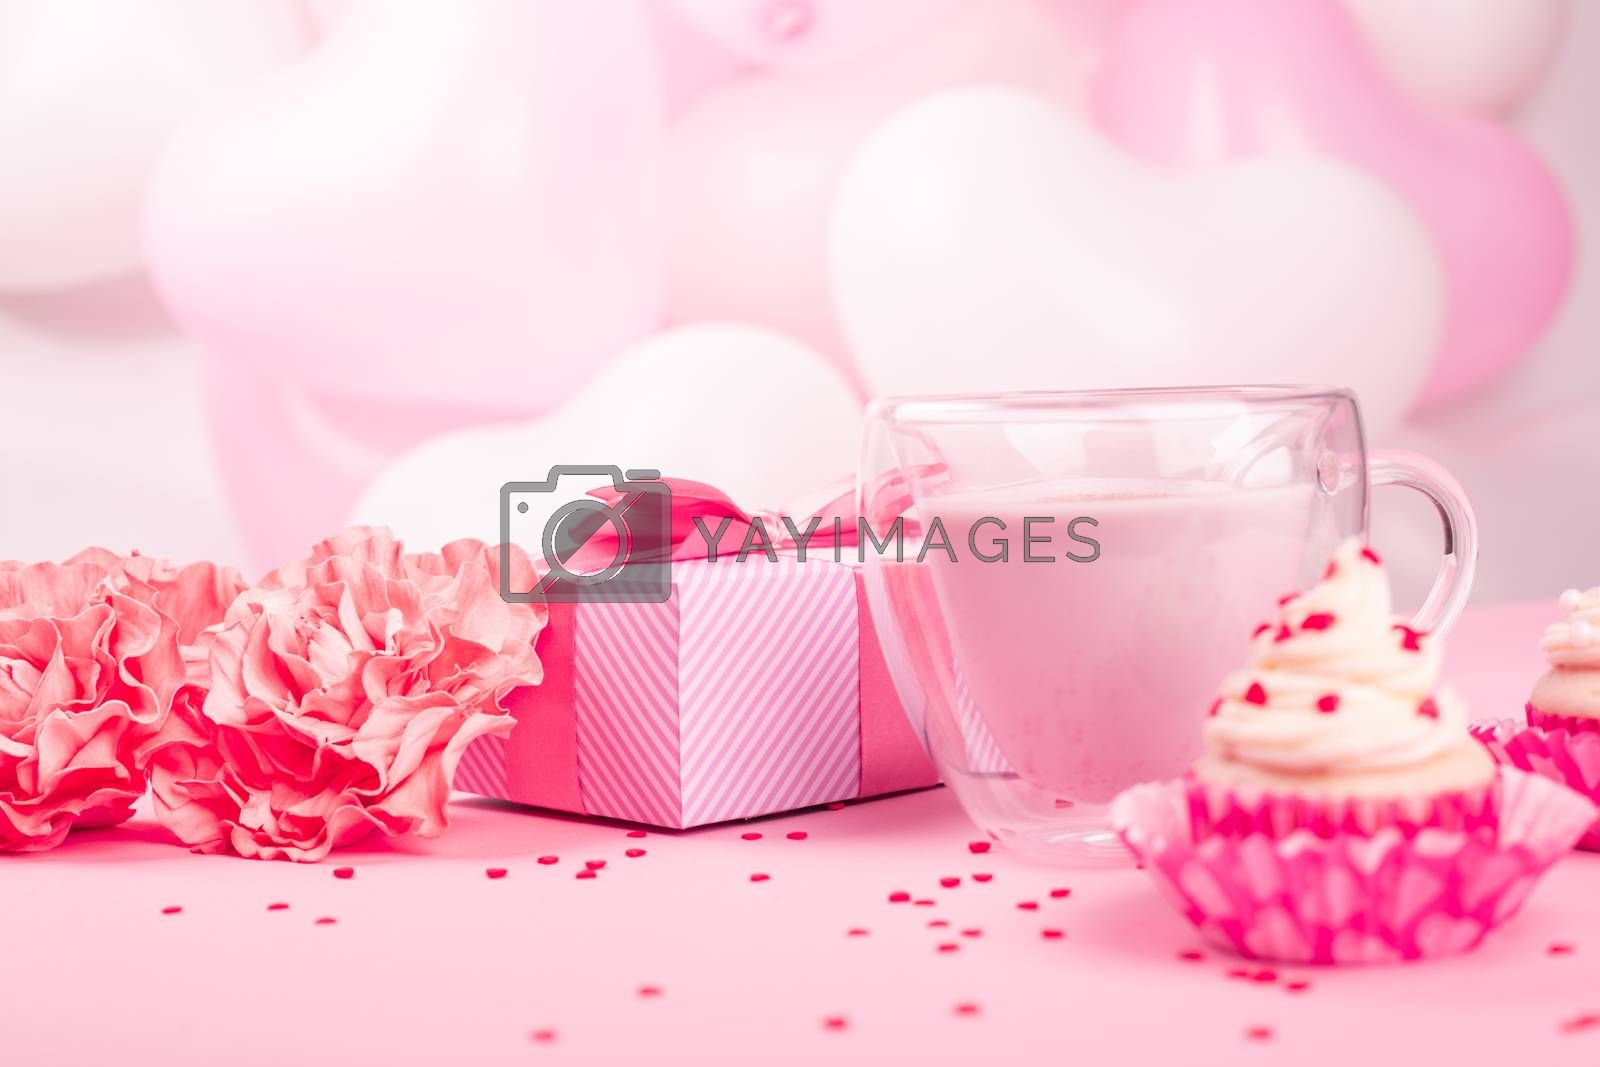 Valentine Day gift in a box wrapped in striped paper and tied with silk ribbon bow and dessert on pink balloons background with copy space for text